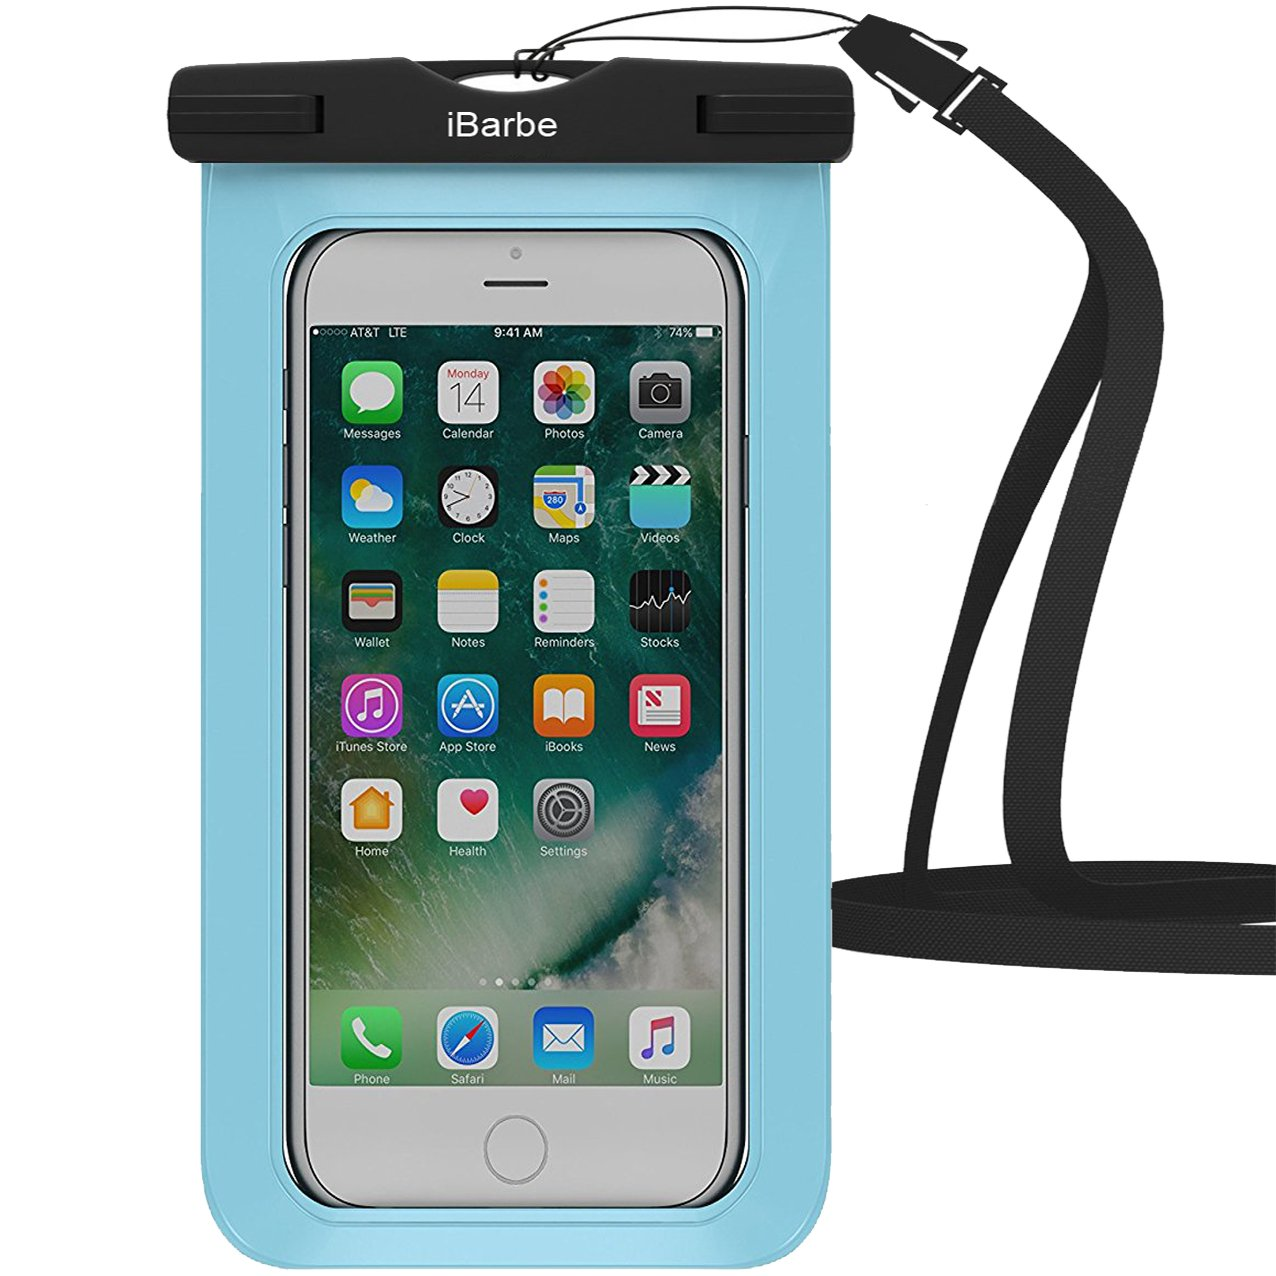 iBarbe 2 Pack Waterproof Case, Universal Cell Phone Plasic TPU Dry Bag for iPhone 7 7 plus 6S 6/6S Plus 5/S/SE 5C samsung galaxy Note 5 s8 s8 plus S 8 S7 S6 Edge s5 etc.to 5.7 inch,Tear+Blue by iBarbe (Image #3)